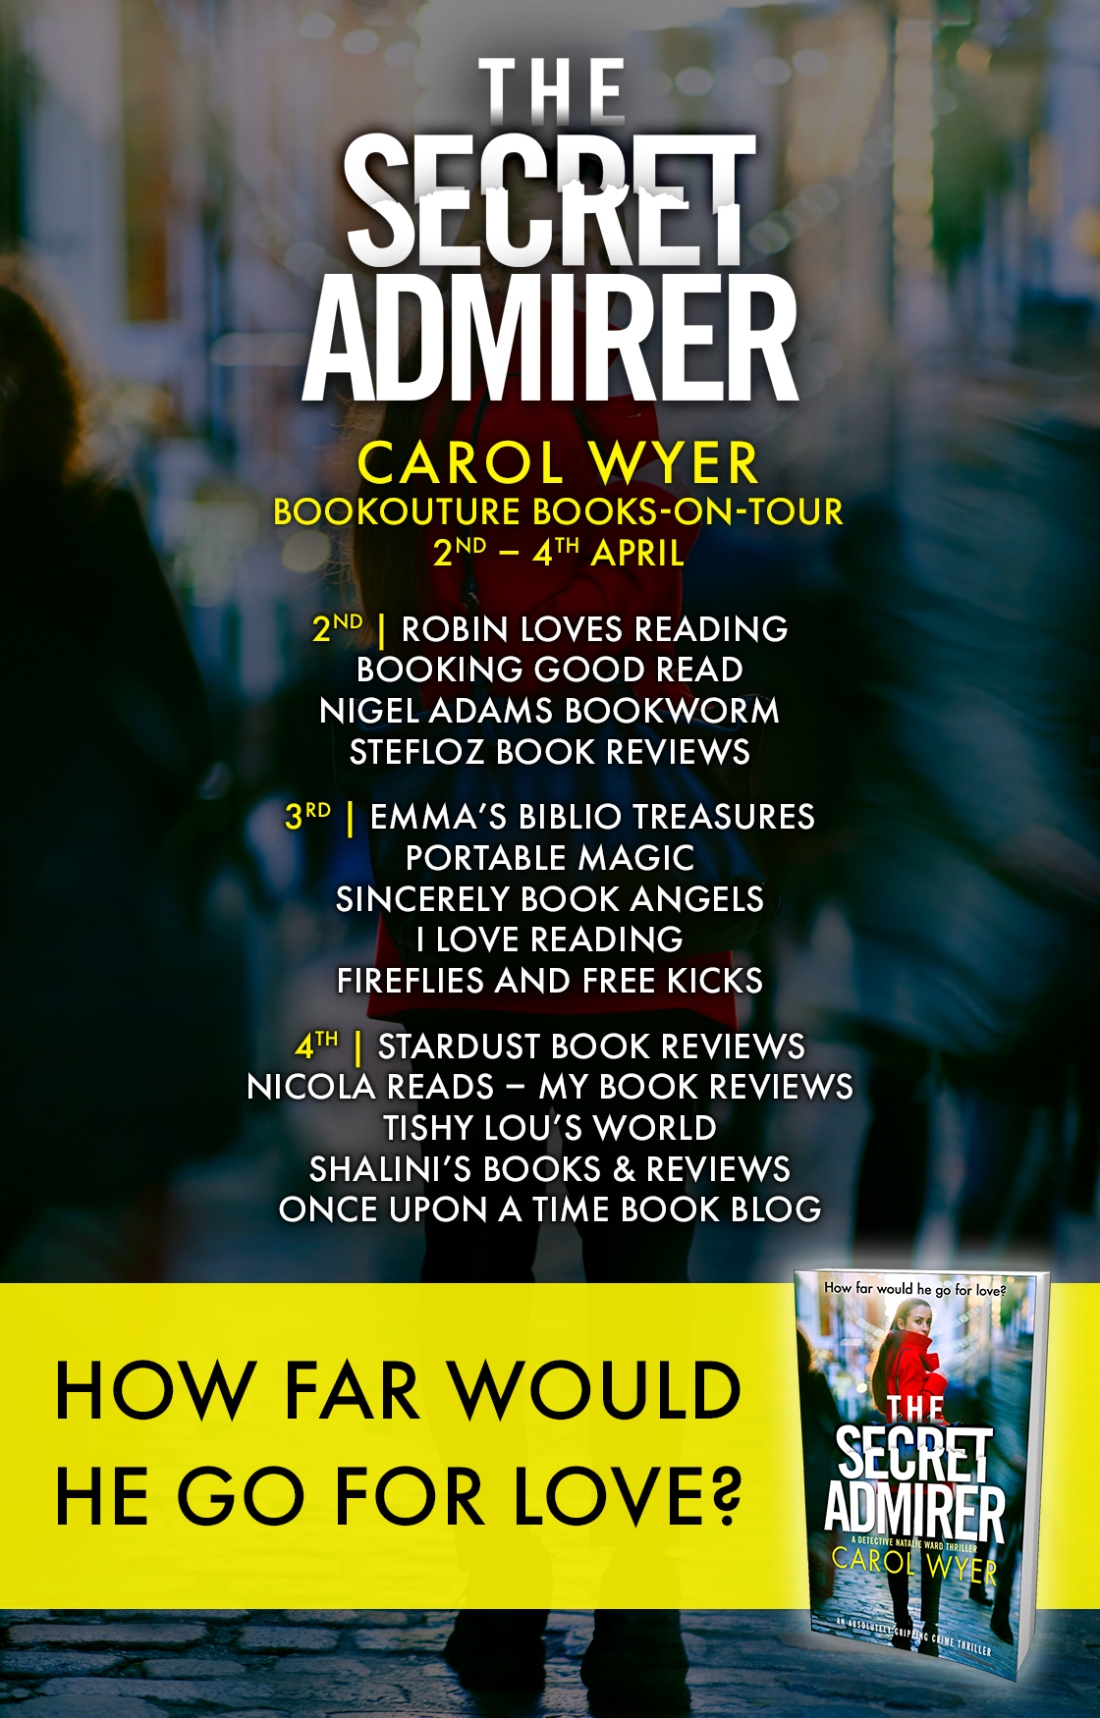 The Sexret Admirer - Blog Tour Poster